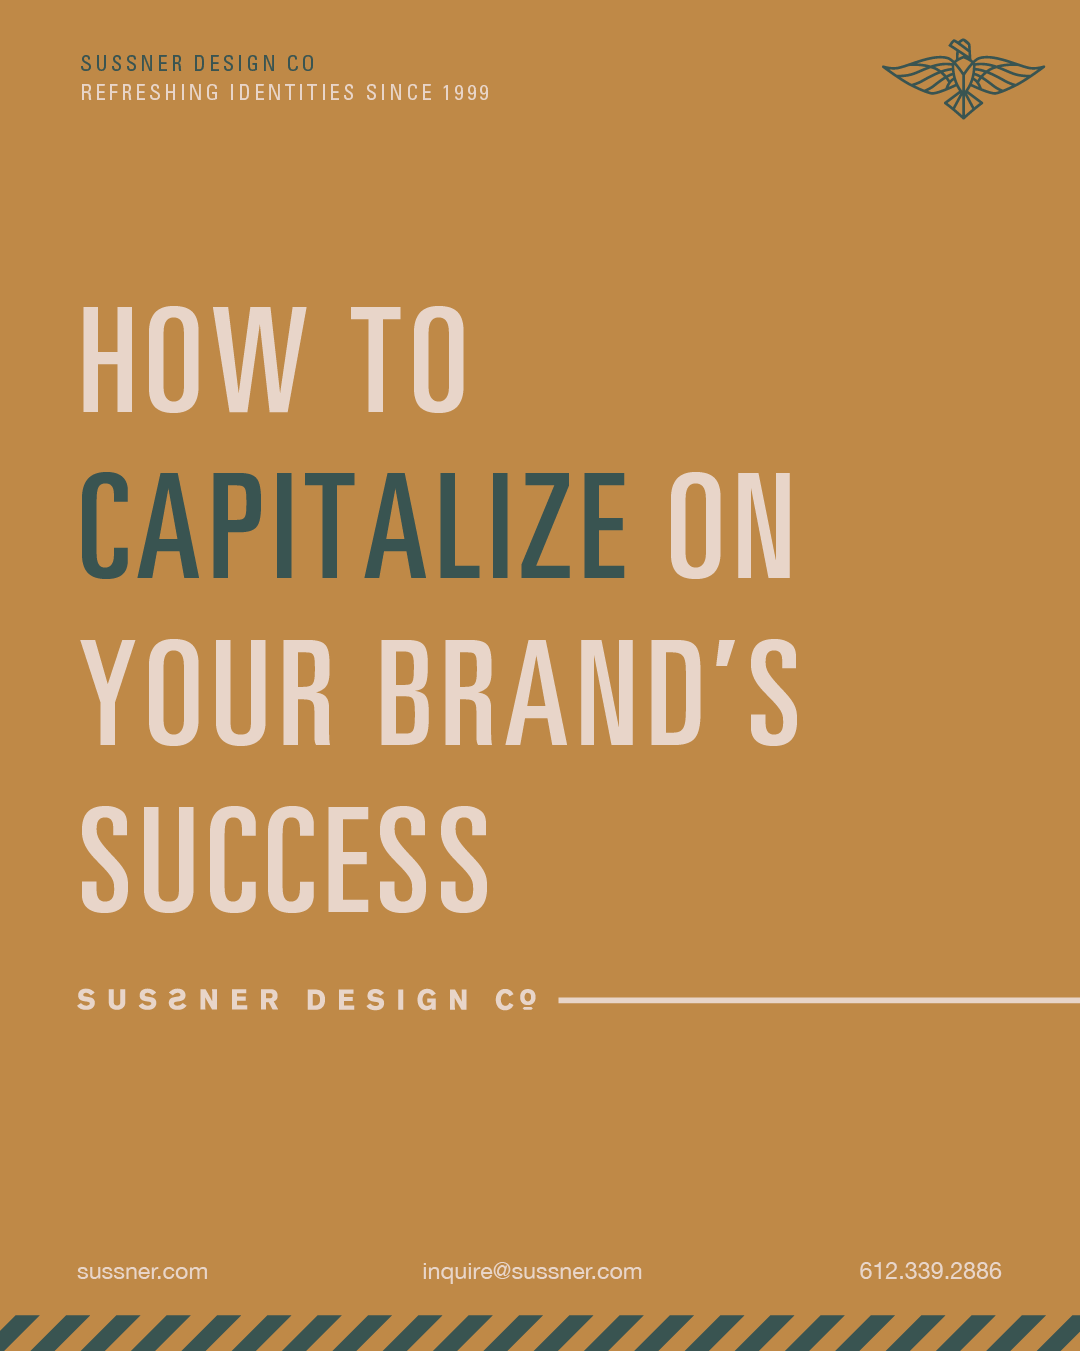 Capitalize on Your Brand's Success